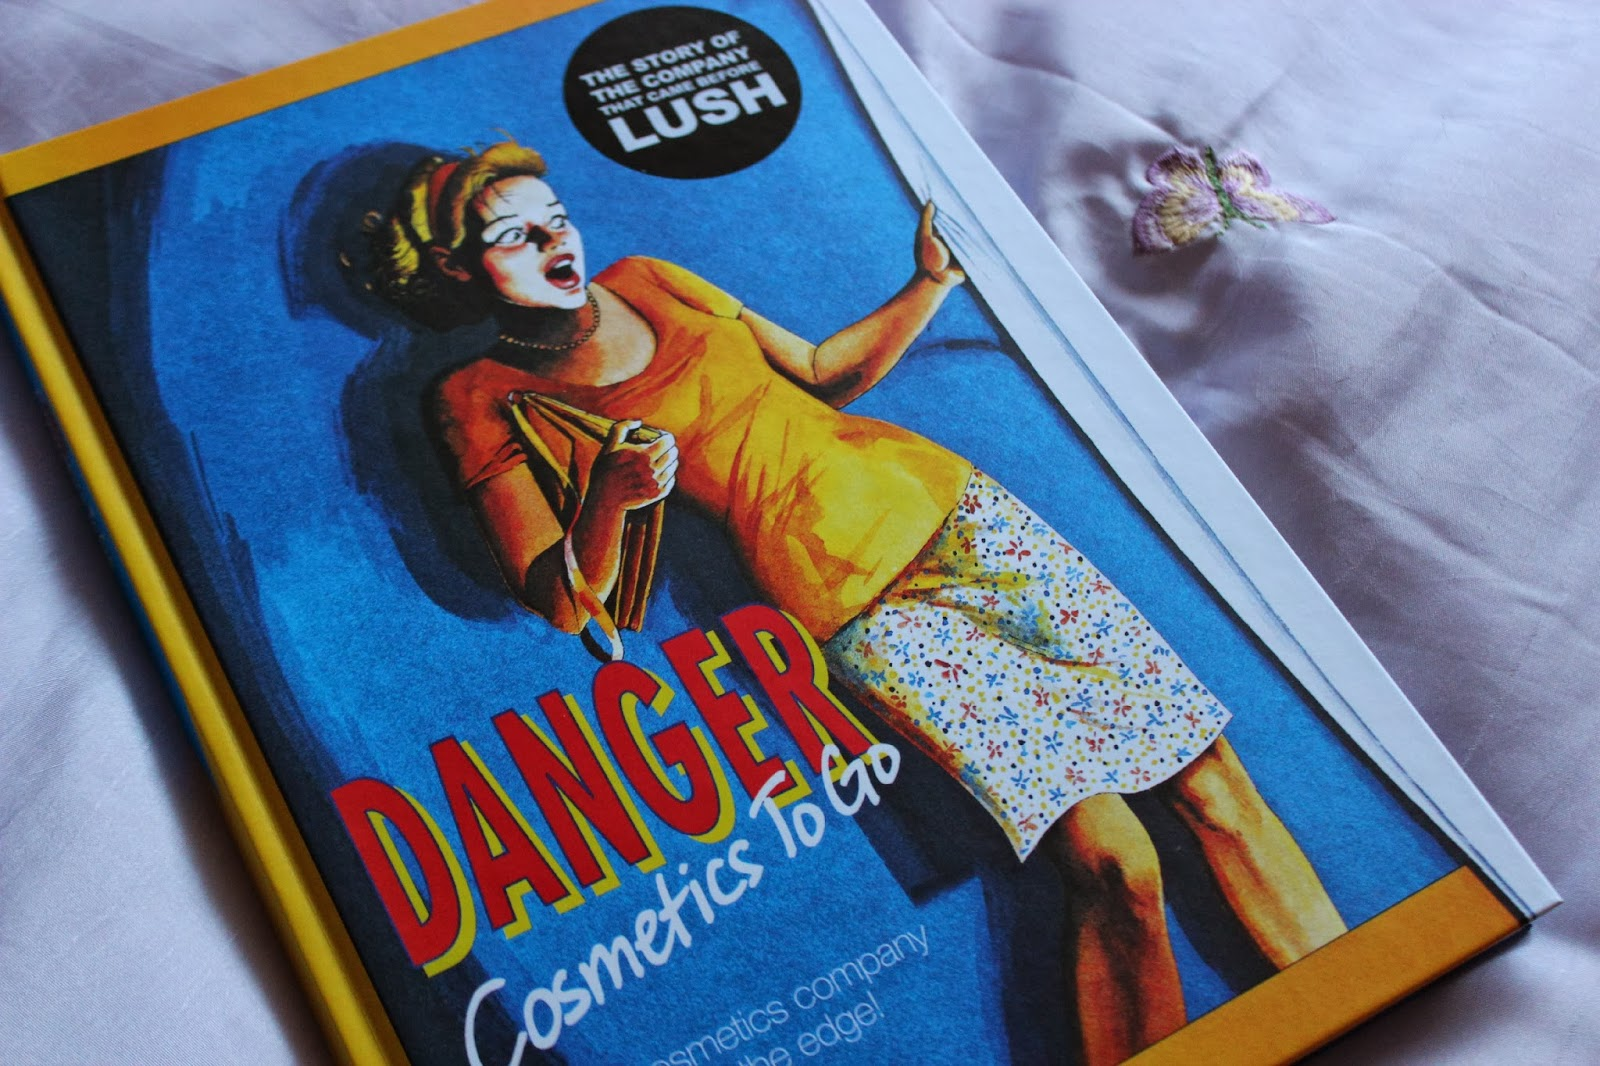 REVIEW: Danger! Cosmetics To Go: A cosmetic company on the edge. The story before LUSH....